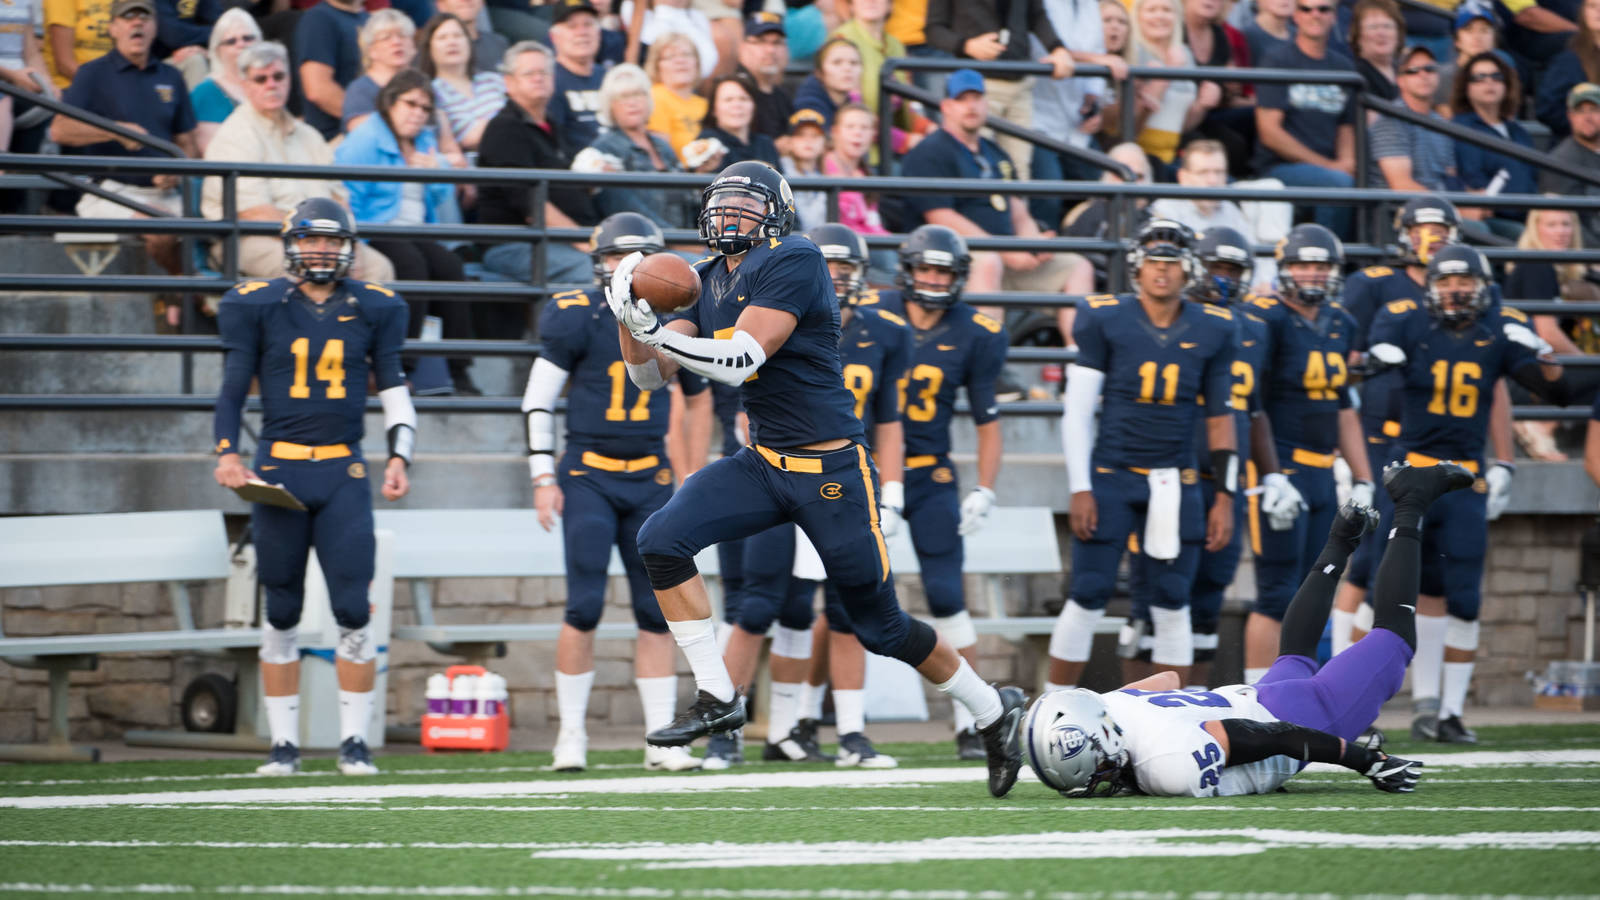 Blugold football player catching pass at home game